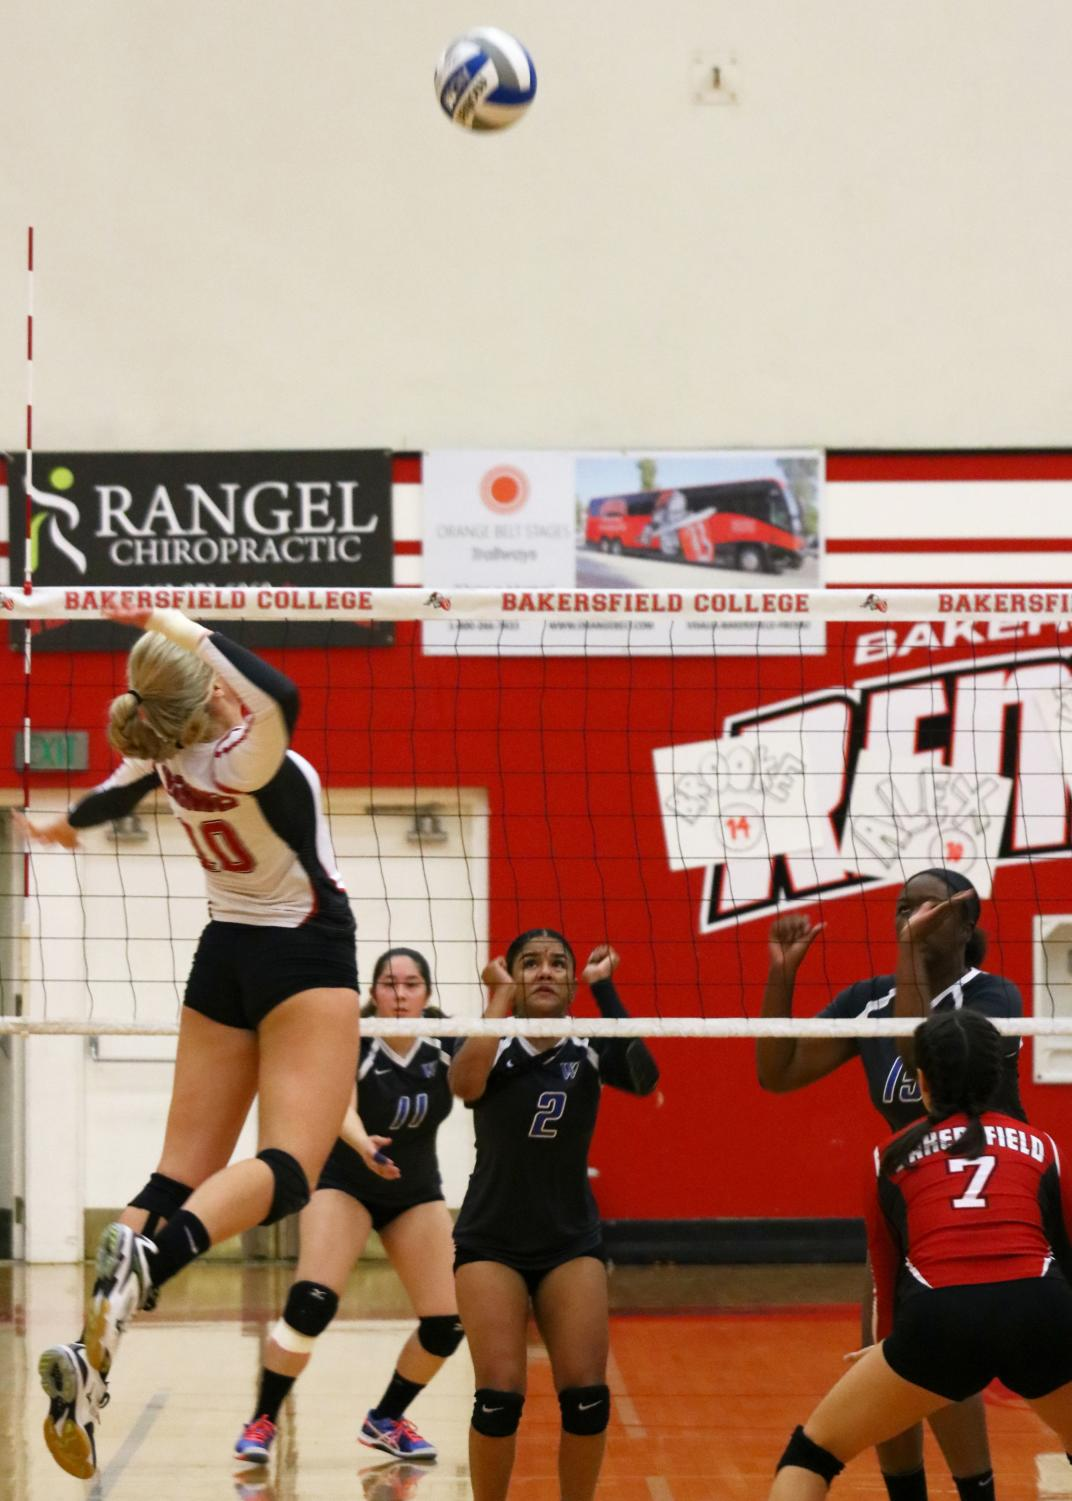 Bakersfield College Volleyball player Alex Paris prepares to spike the volleyball, jumping midair, on West Los Angeles College during a play.